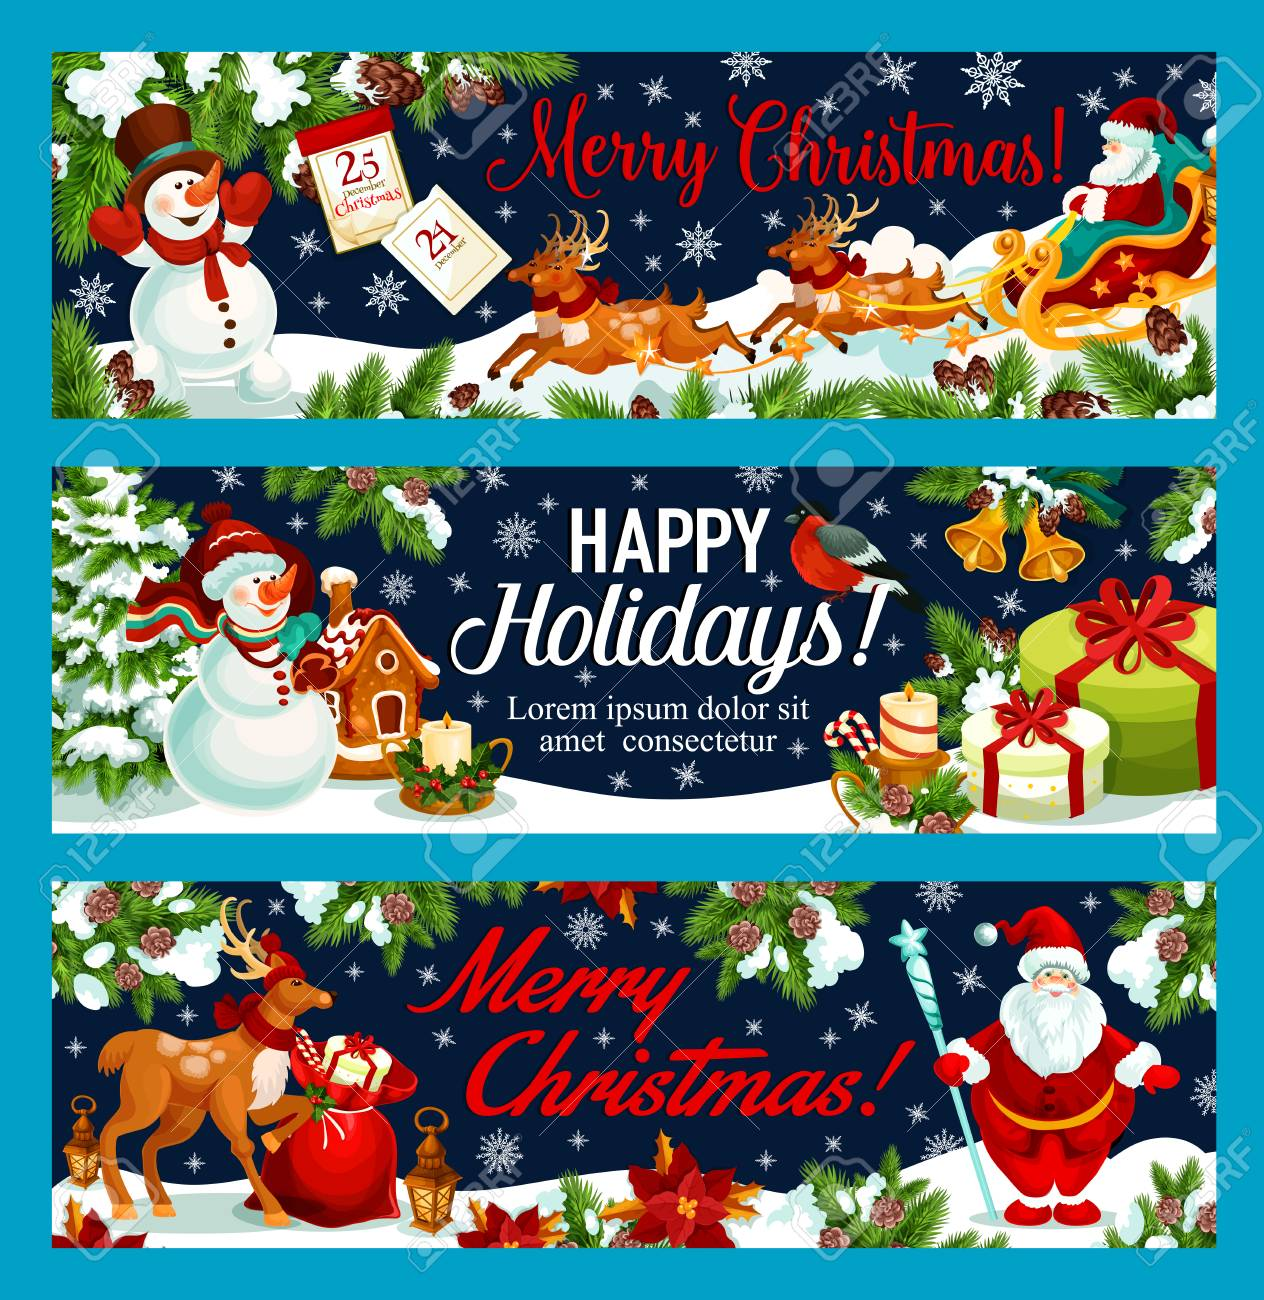 Fun Merry New Year Happy Holidays Wishes Family Happy Holidays Wishes Happy Holidays Greeting Banners New Year Winter Vector Santa Merry French Happy Holidays Greeting Banners inspiration Happy Holidays Wishes